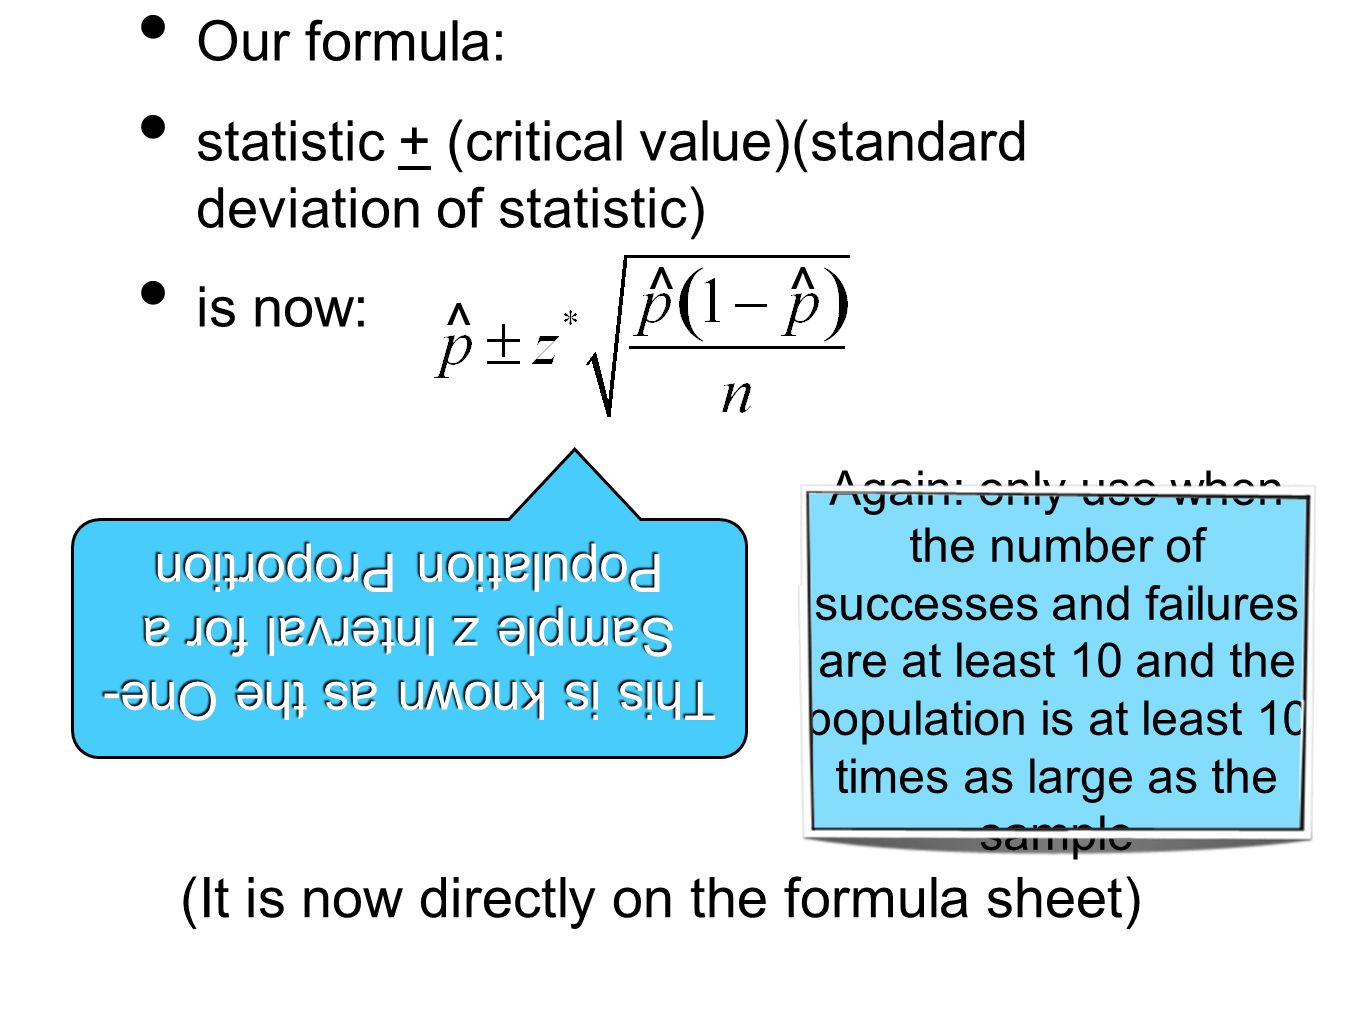 hypothesis standard deviation and critical value Types of errors in hypothesis  for a large data set did not exceed a certain critical value  distribution with a mean of 950 and a standard deviation of.